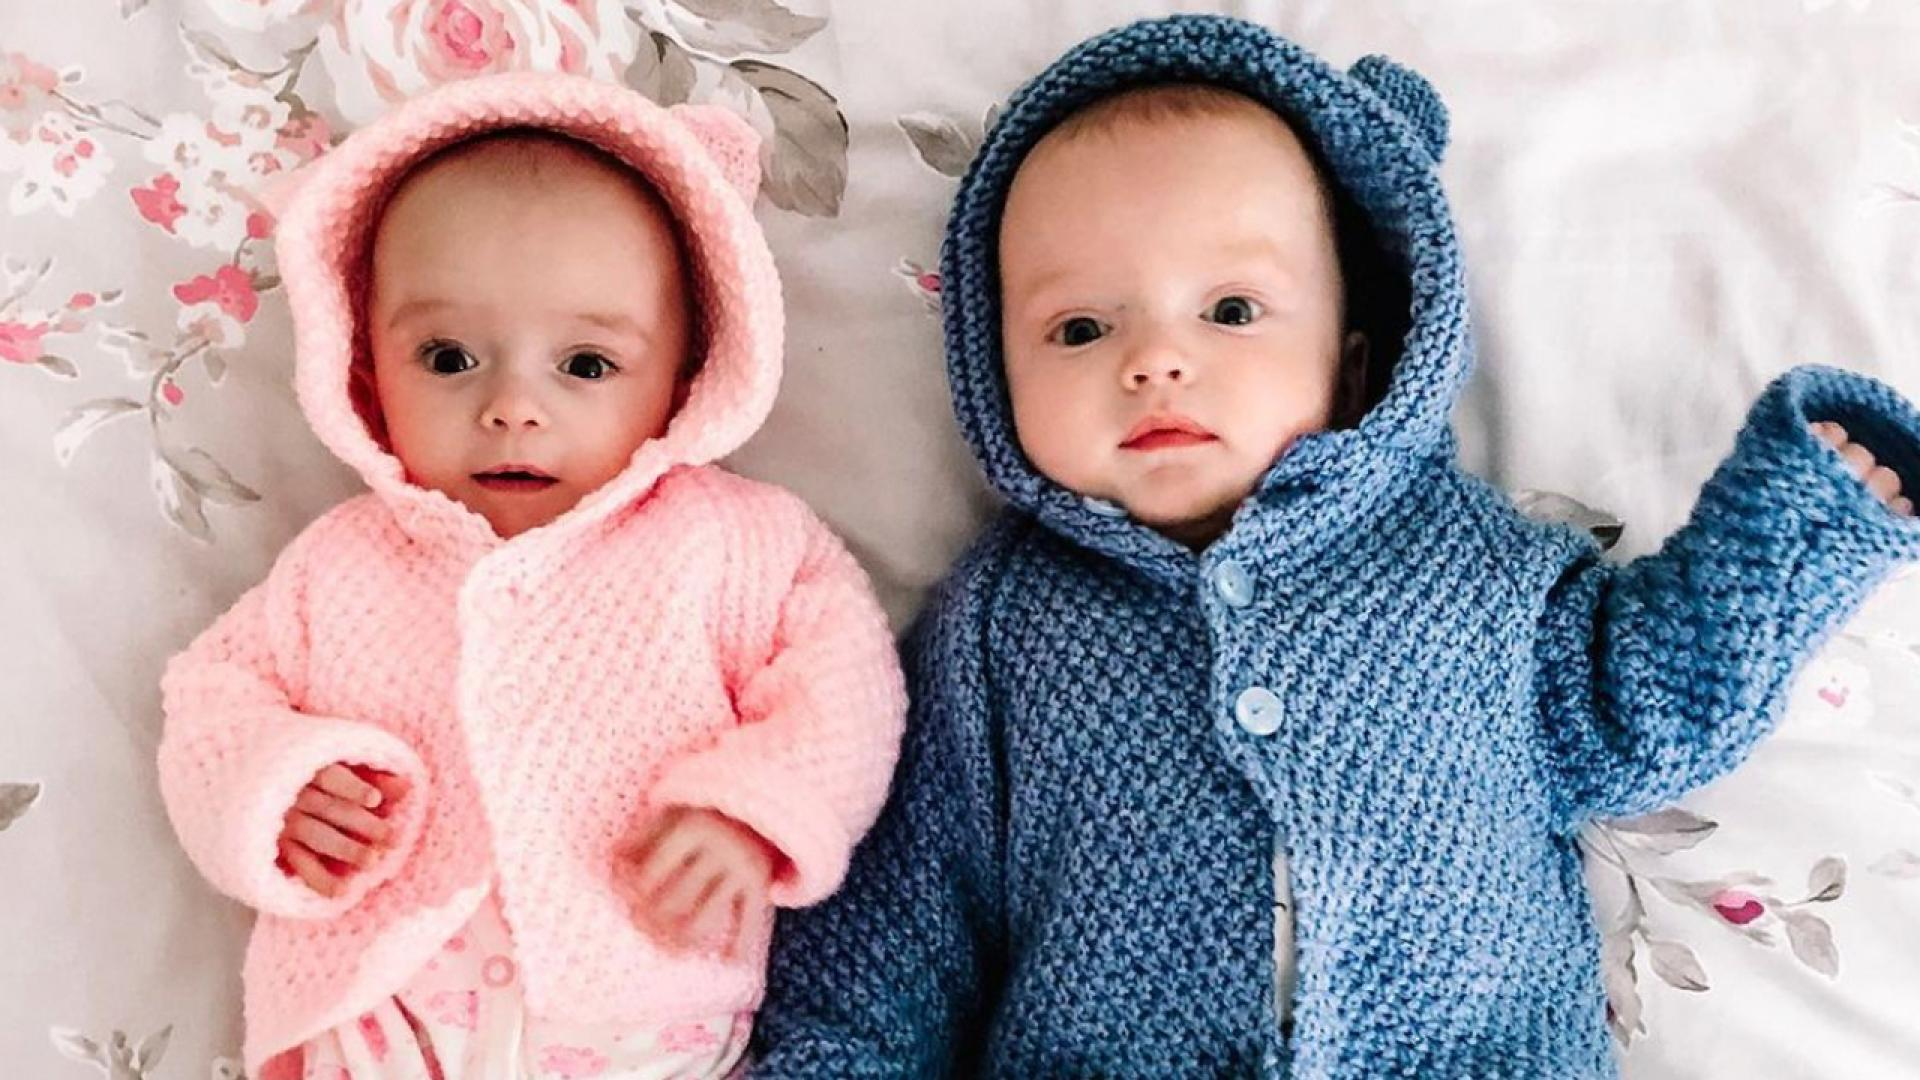 Noah and Rosalie were conceived three weeks from each other.